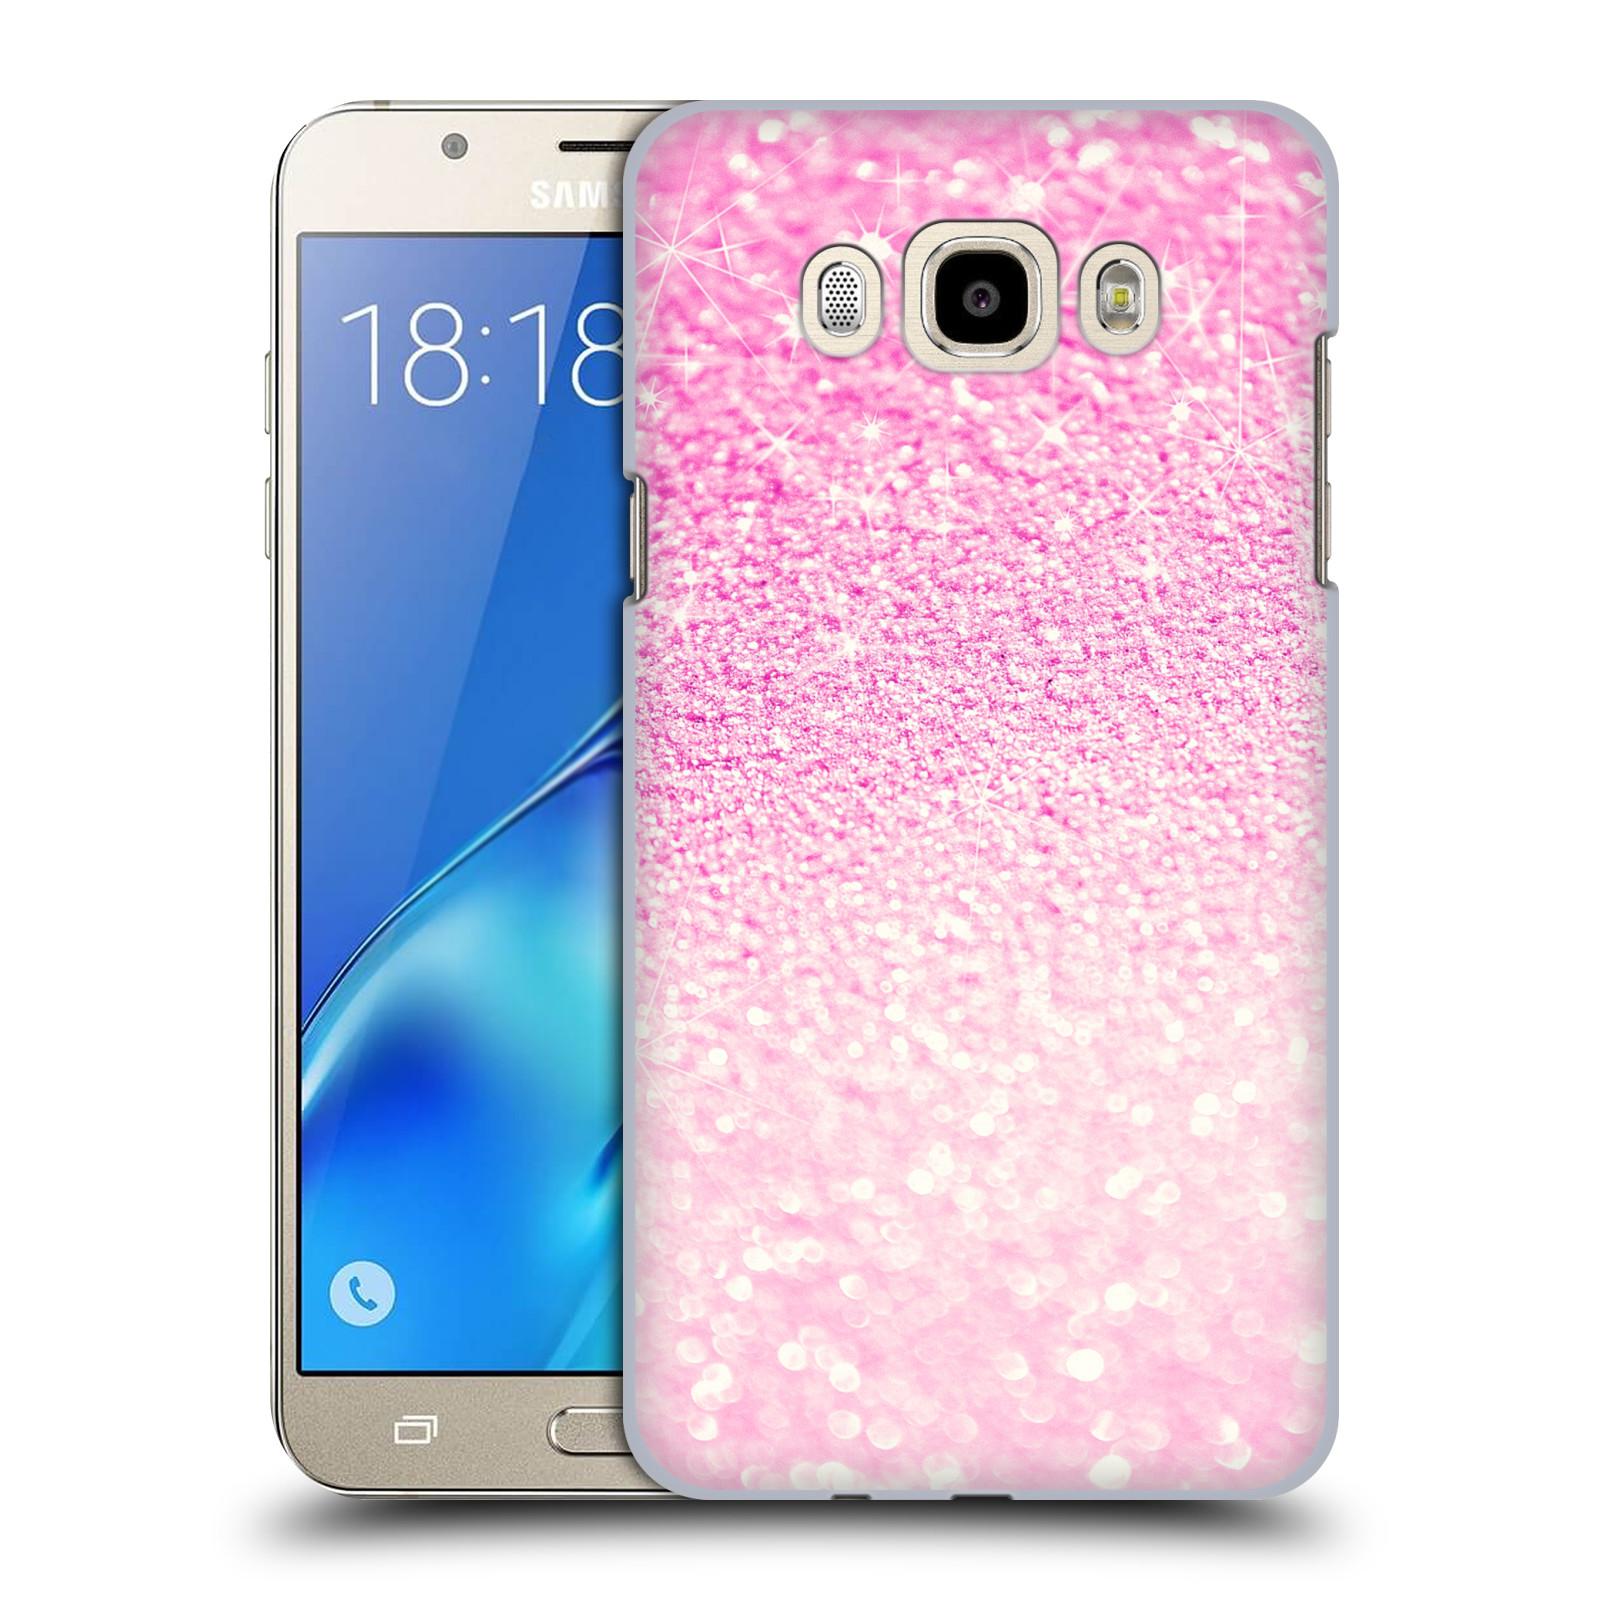 UFFICIALE-Monika-Strigel-frenesia-HARD-BACK-CASE-per-Samsung-Telefoni-3